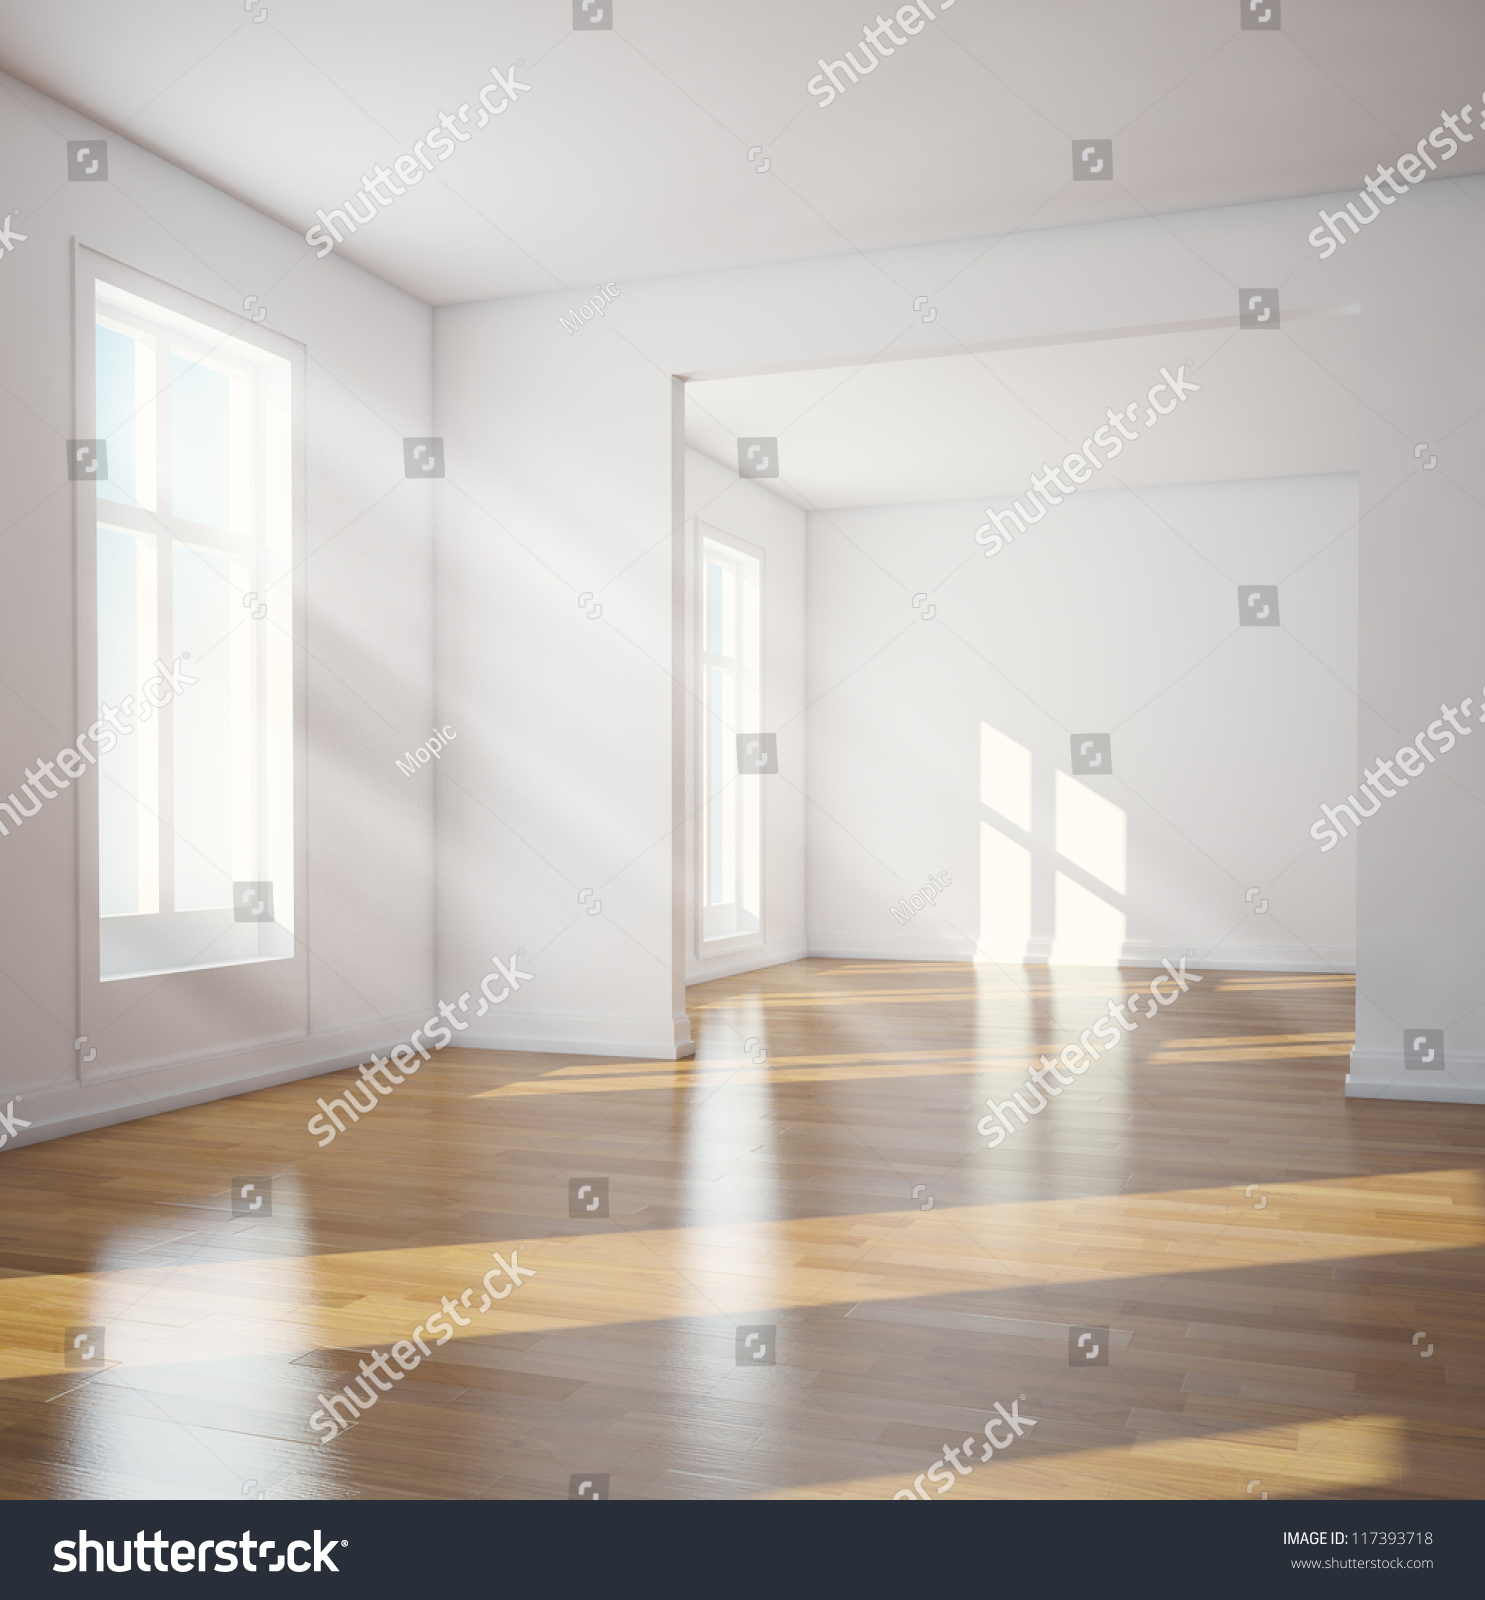 Simple living room interior design 3d - Modern Interior Sunlit Empty Room Stock Photo 117393718